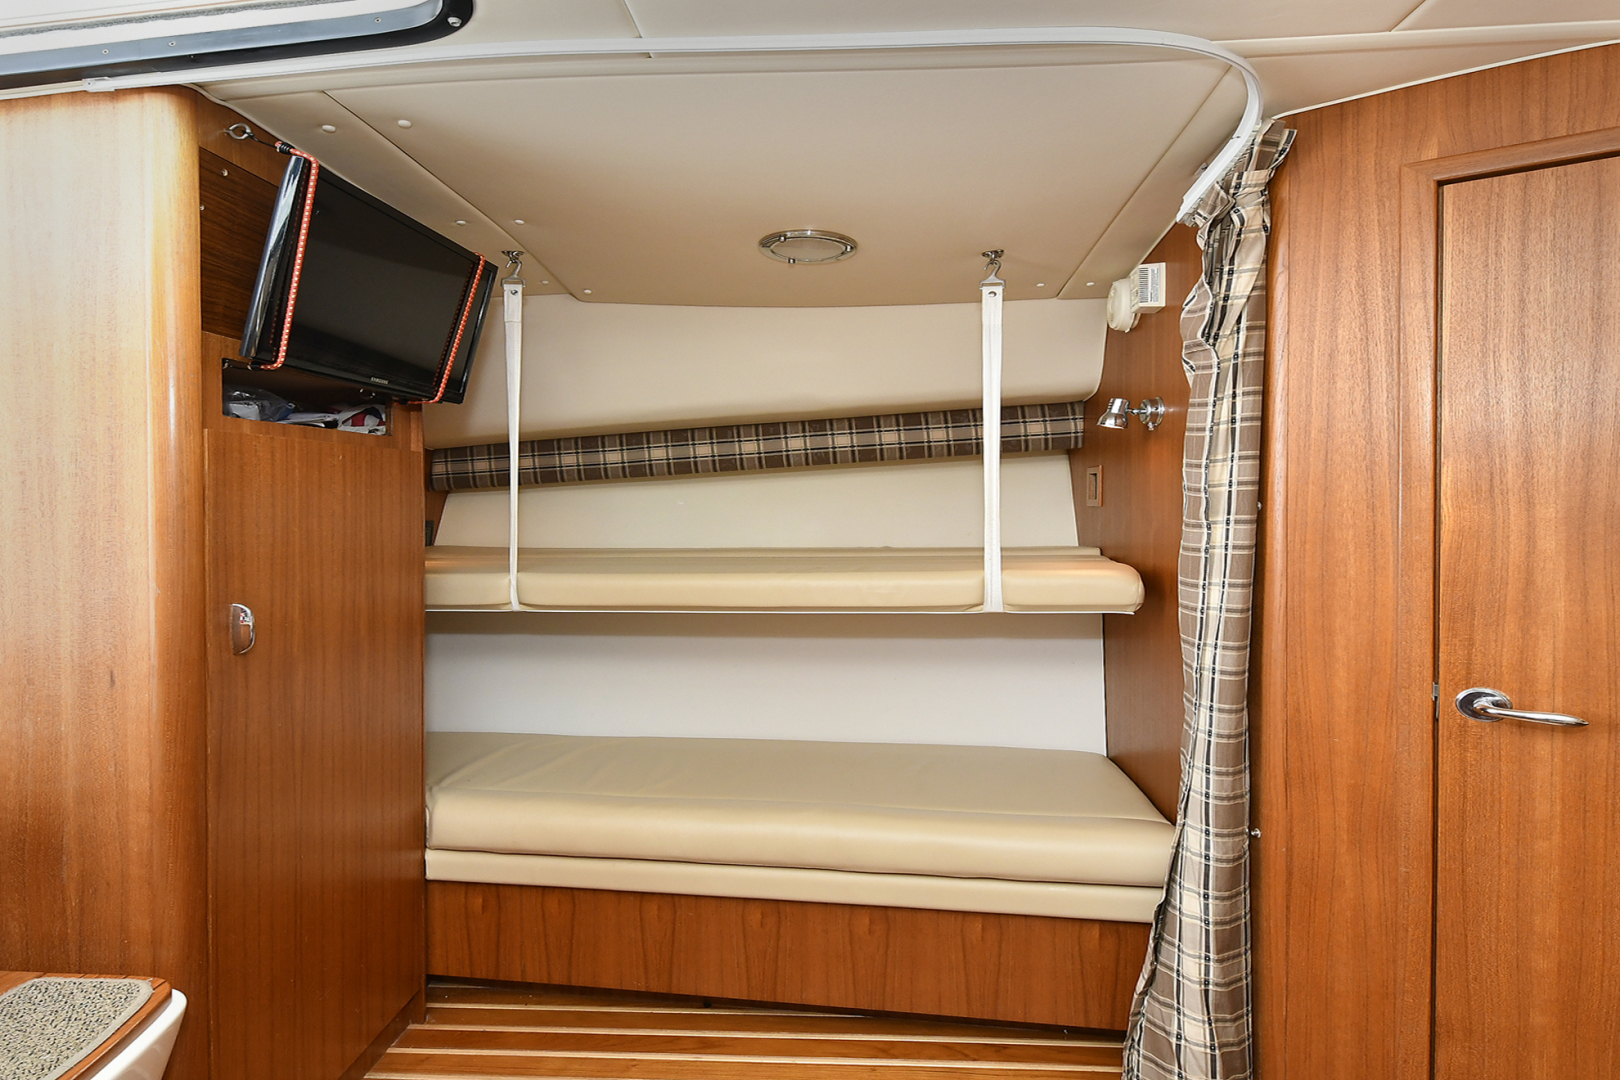 Tiara-3800 Open 2003-Catch 22 Oyster Bay-New York-United States-Aft Bench Converts to Bunks-1224926 | Thumbnail